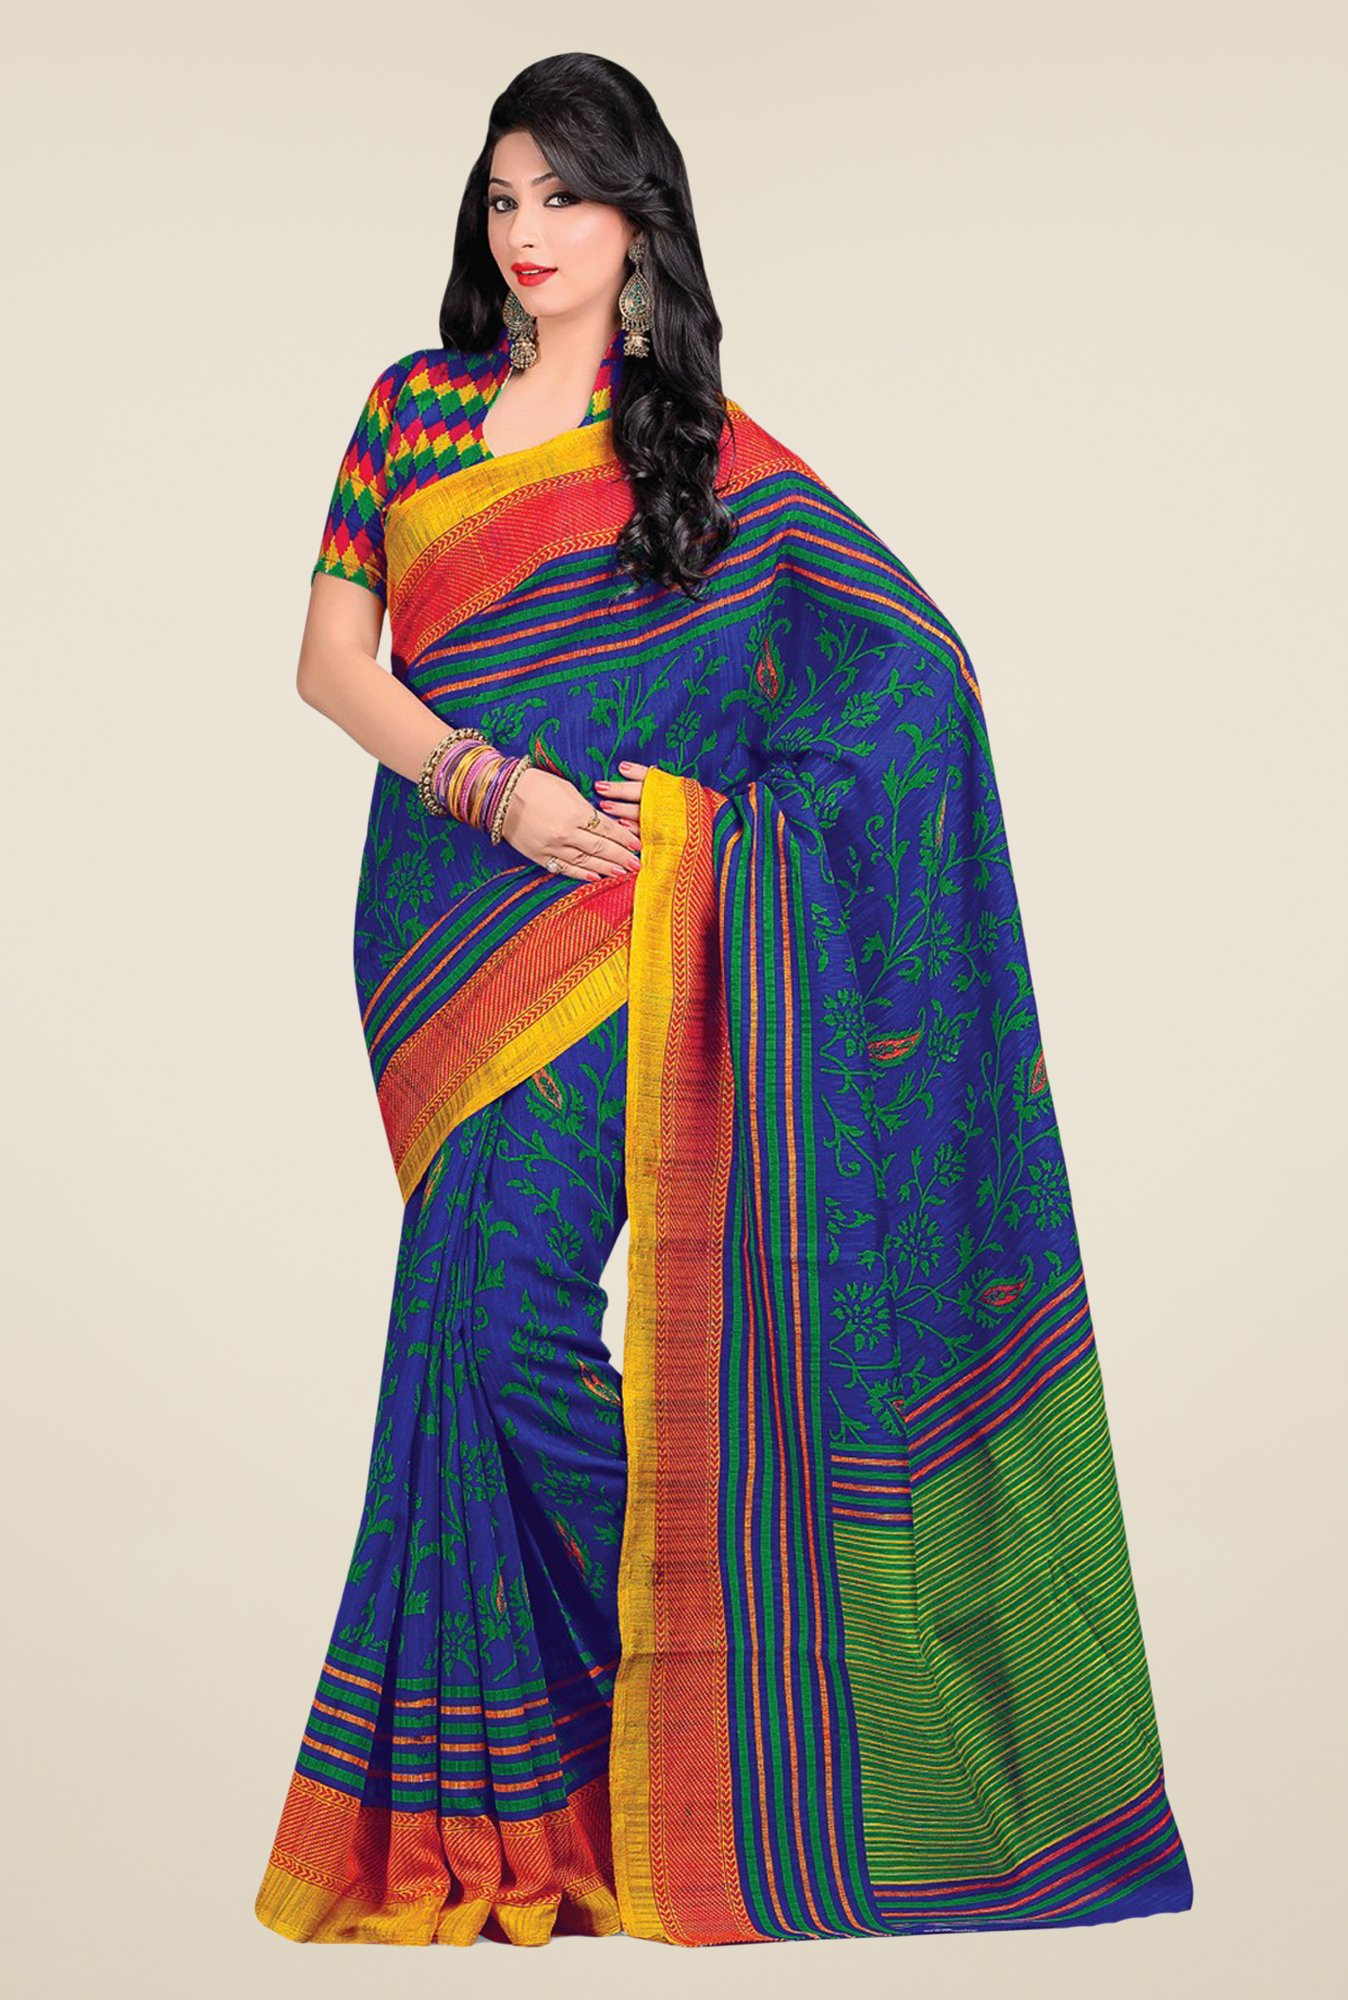 Salwar Studio Blue & Green Cotton Blend Floral Print Saree